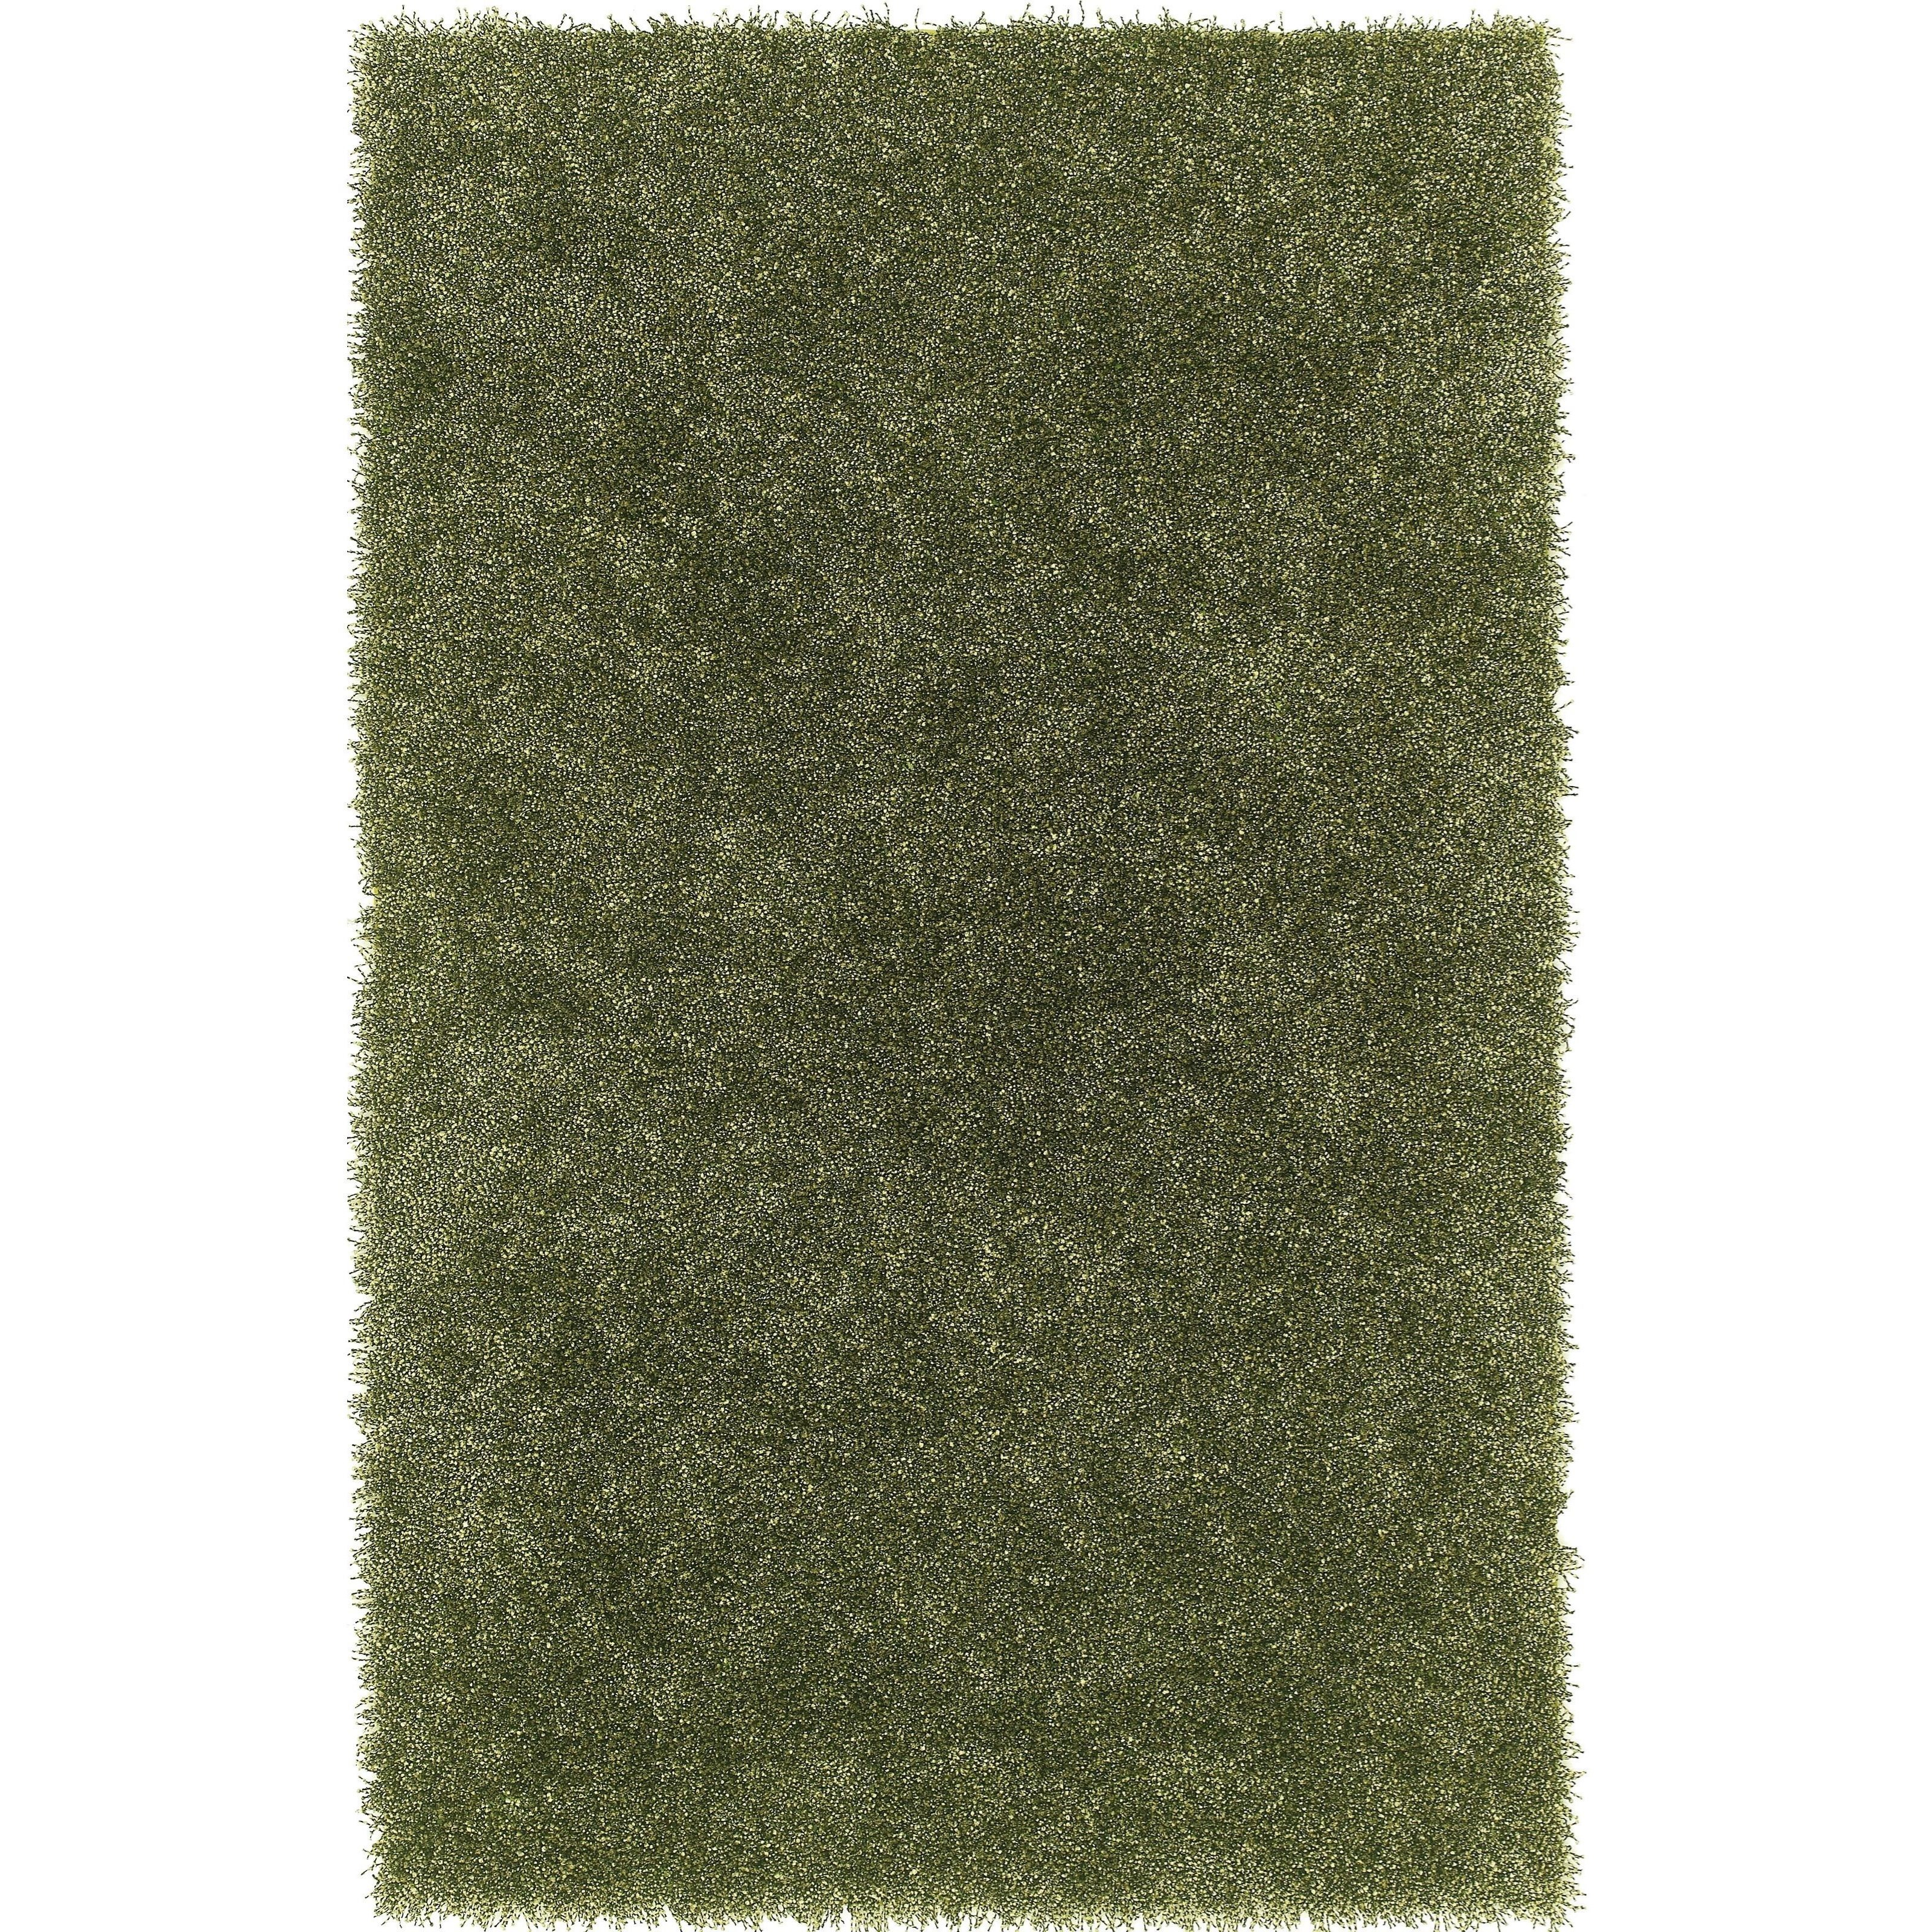 Dalyn Belize Kiwi 9'X13' Rug - Item Number: BZ100KI9X13